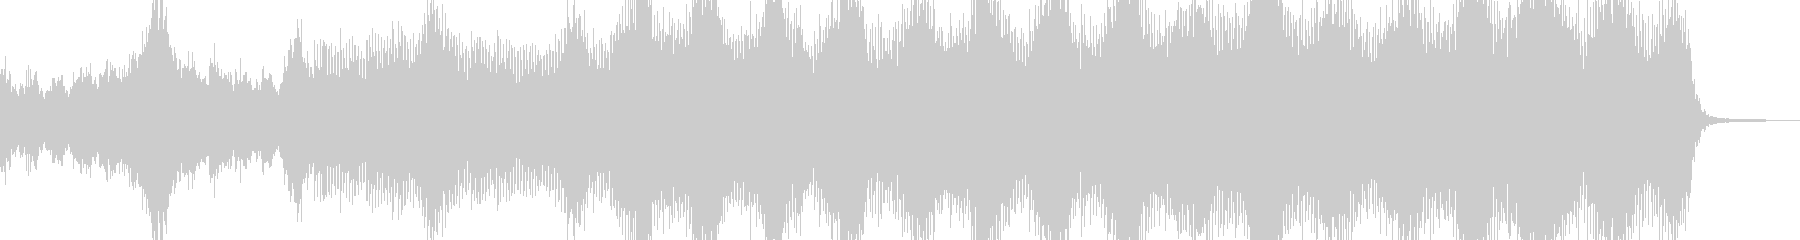 Produce undead and bloody horror A's unreproduced waveform